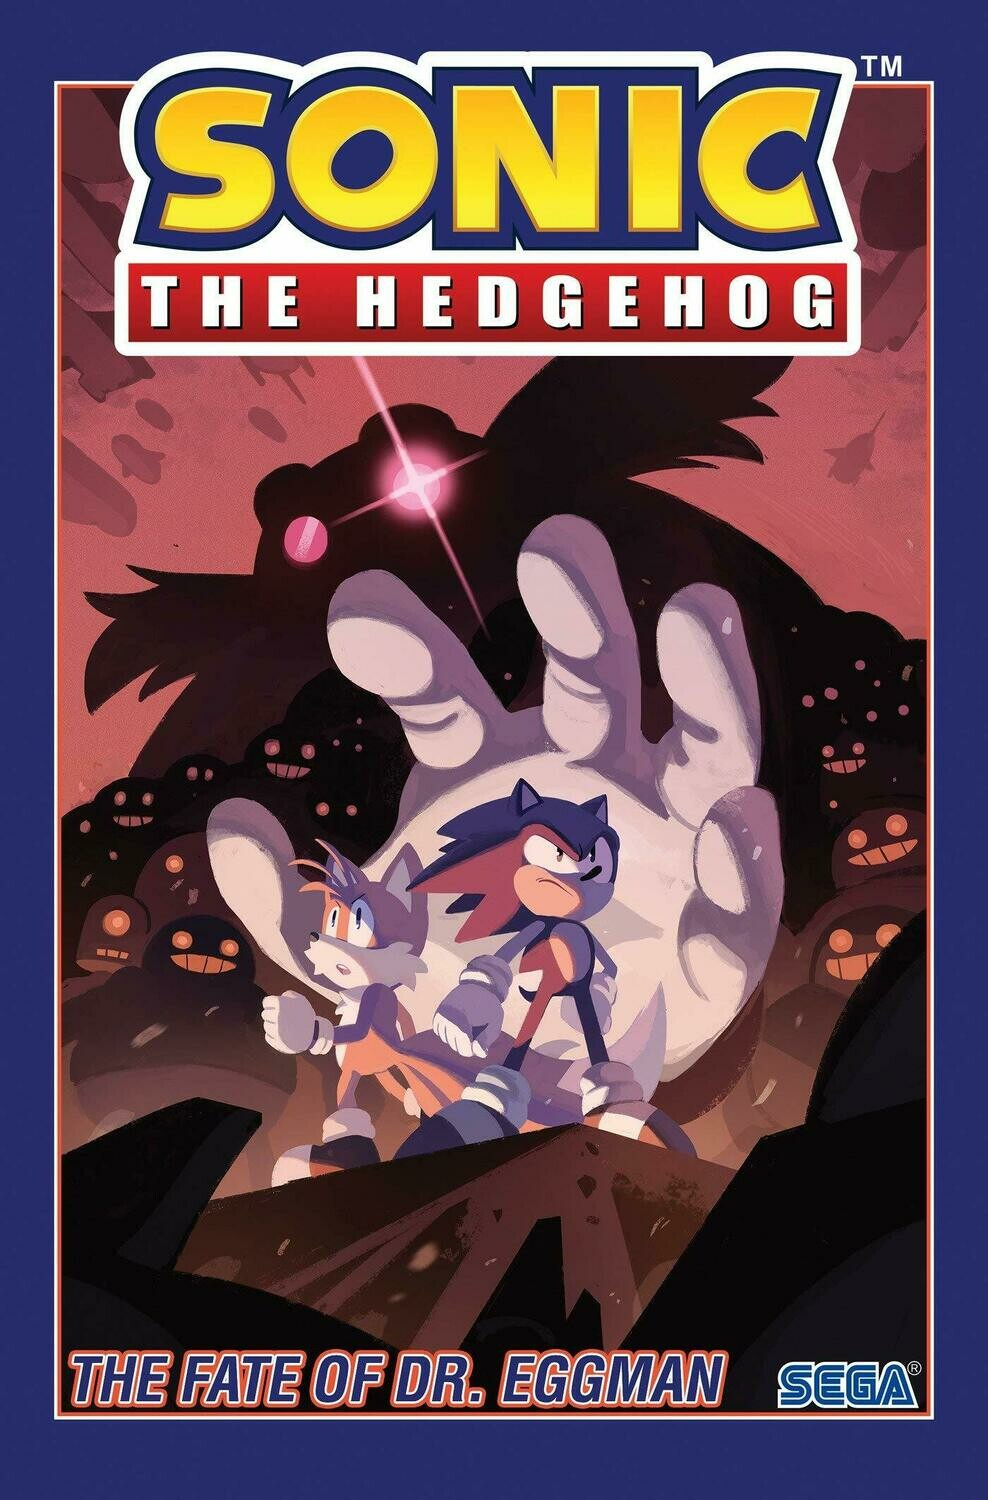 Sonic The Hedgehog: The Fate Of Dr. Eggman